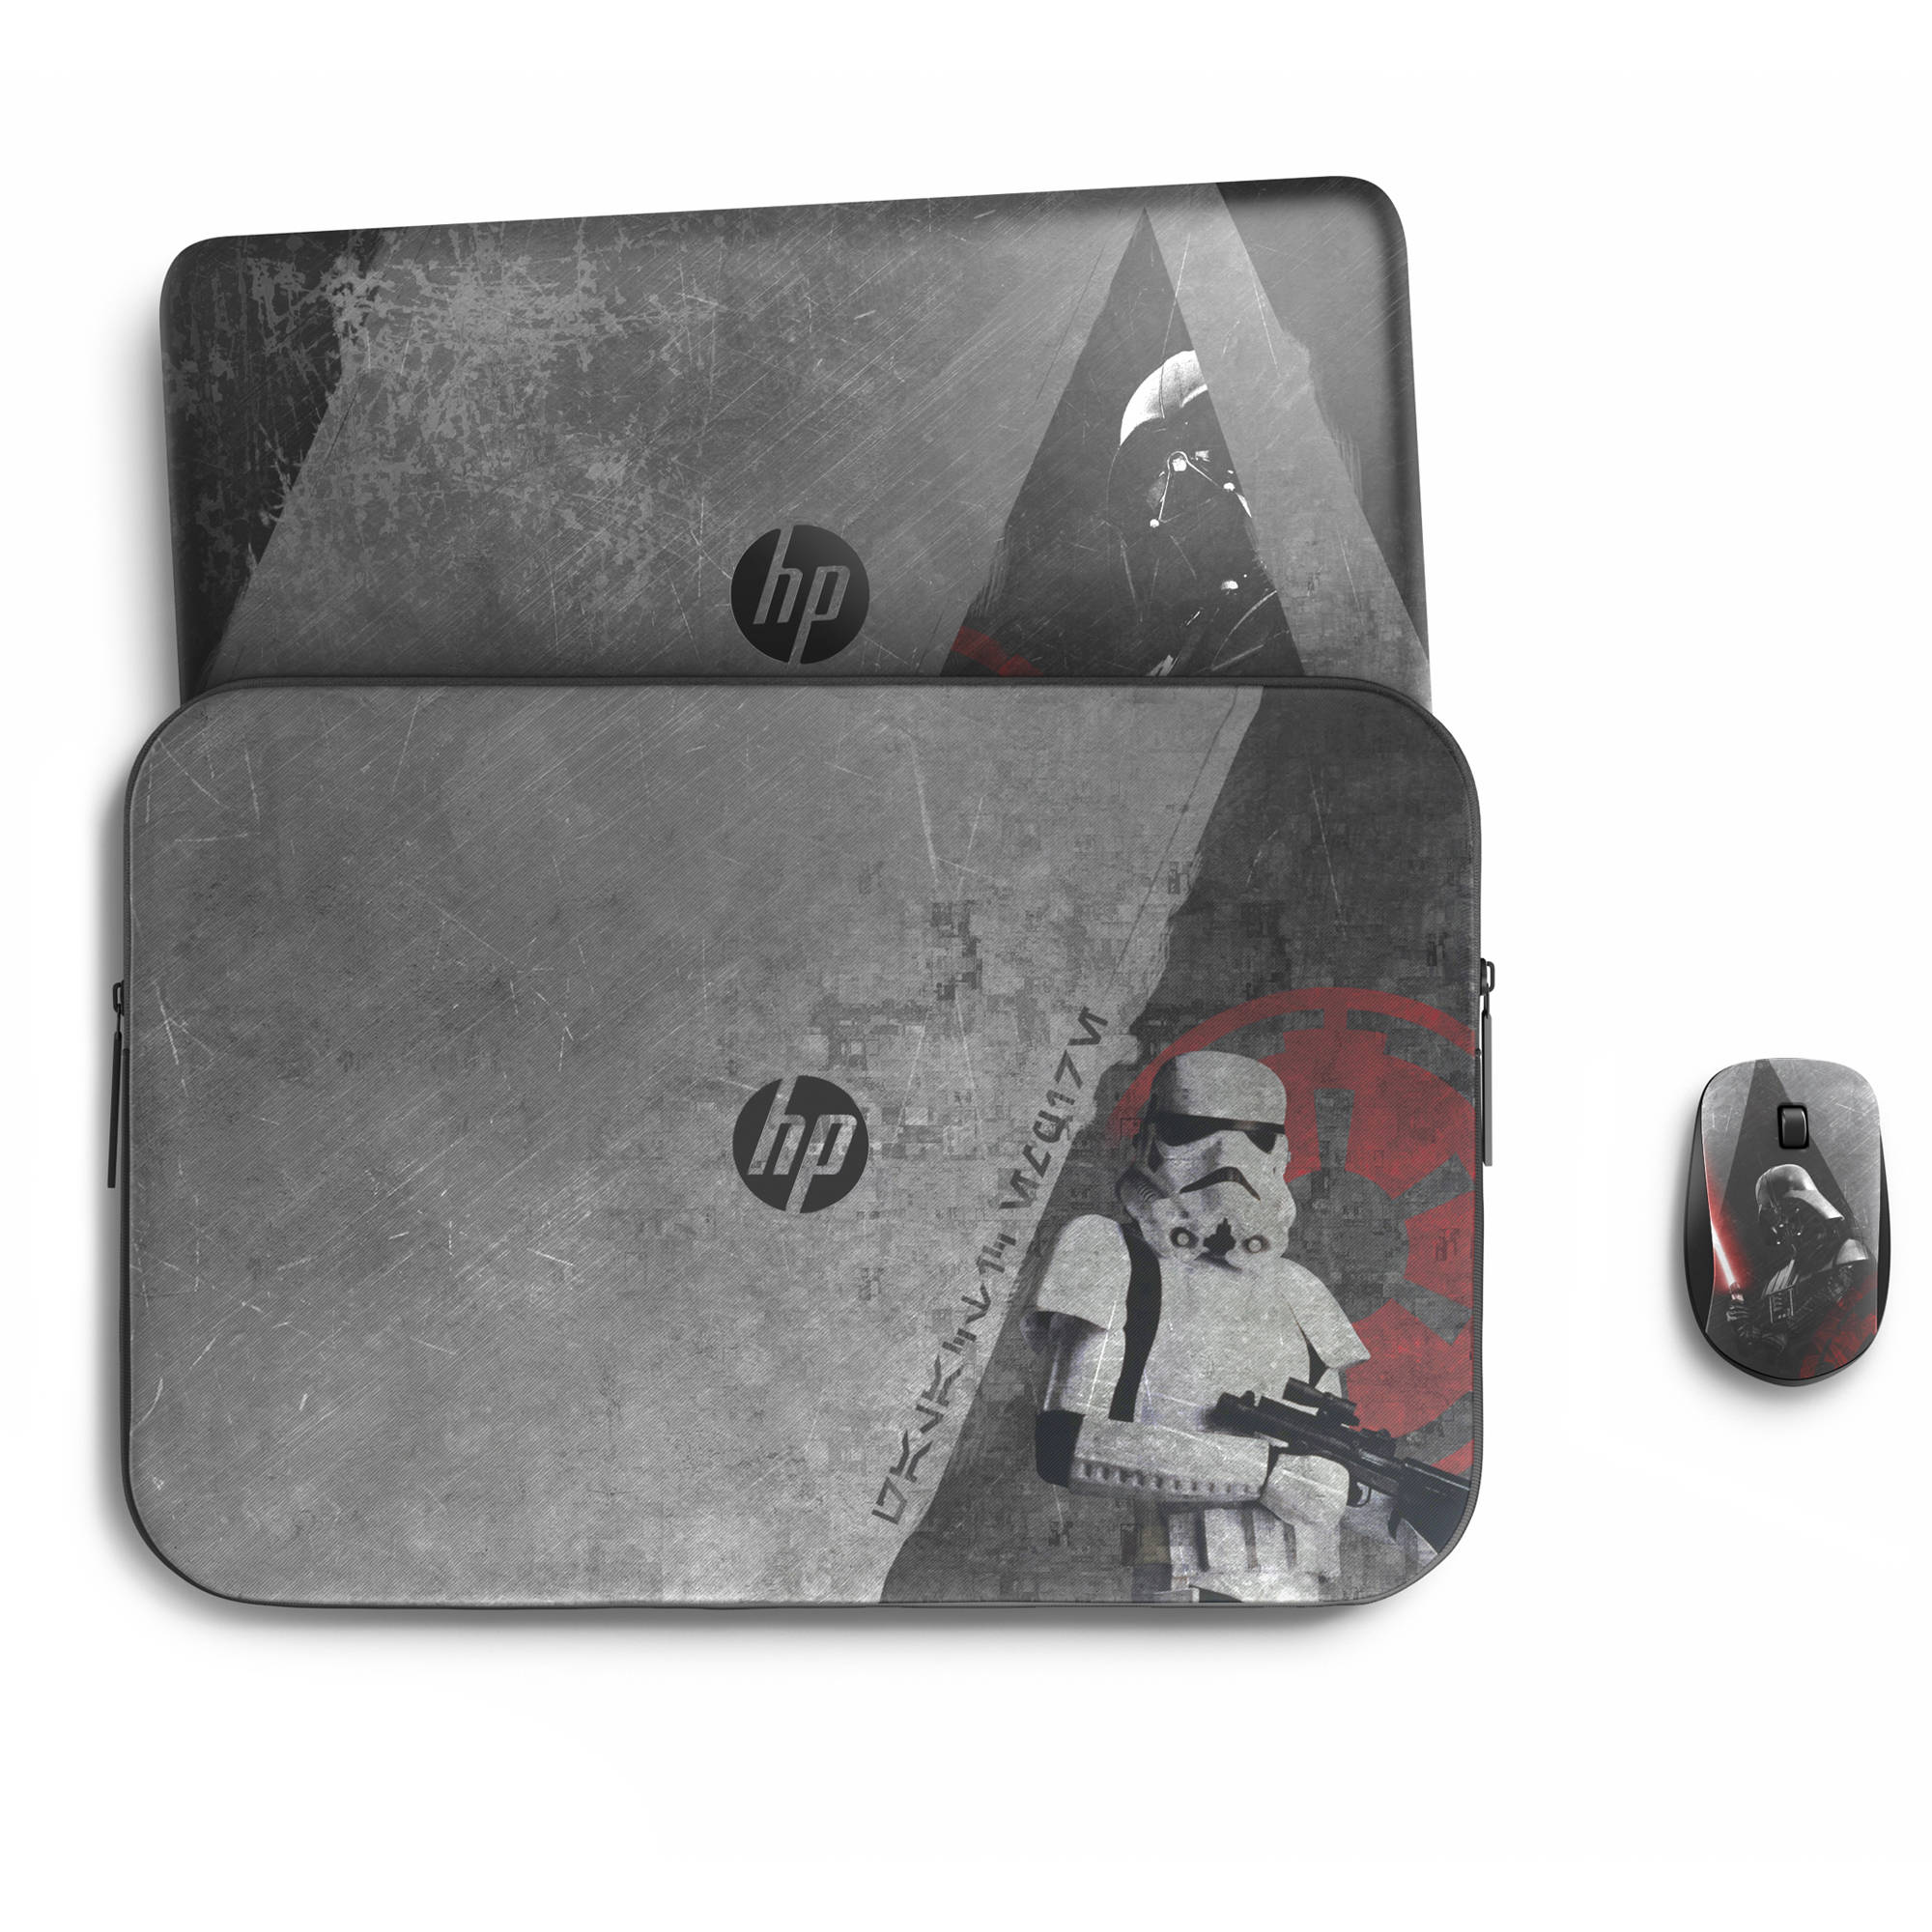 Hp Star Wars Special Edition Sleeve Fits Most Laptops Up To 15 6